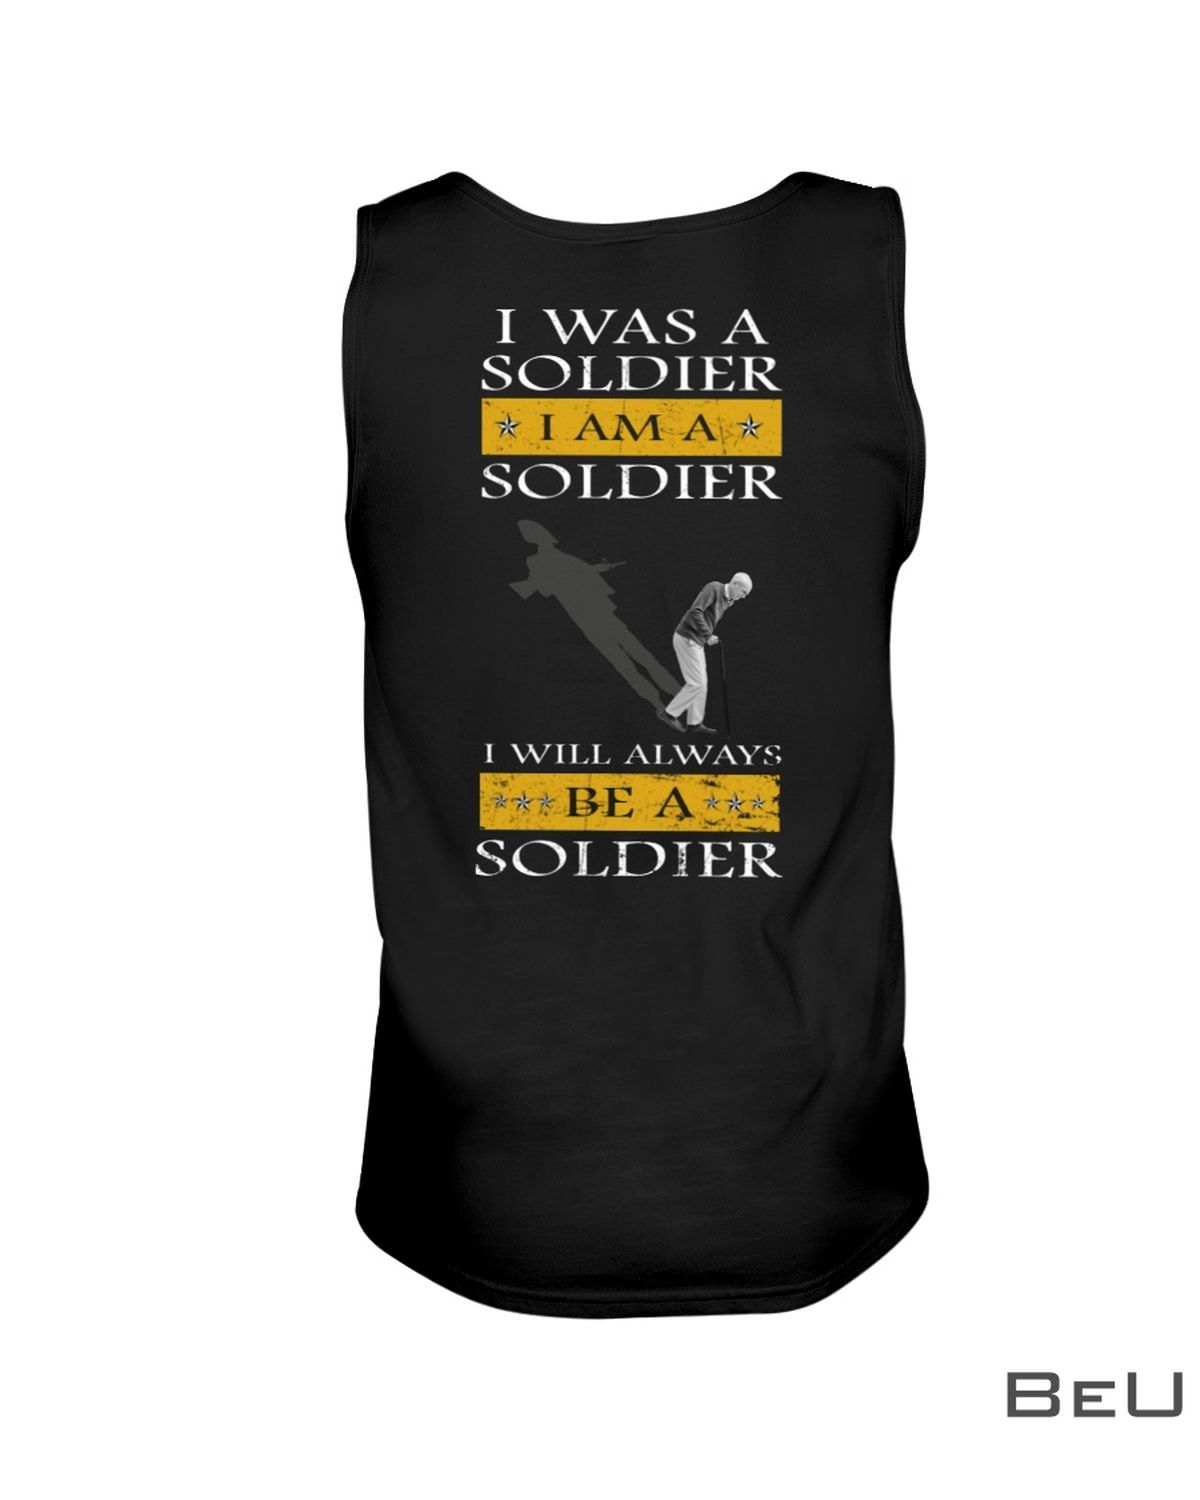 I Was A Soldier I Will Always Be A Soldier Shirtc